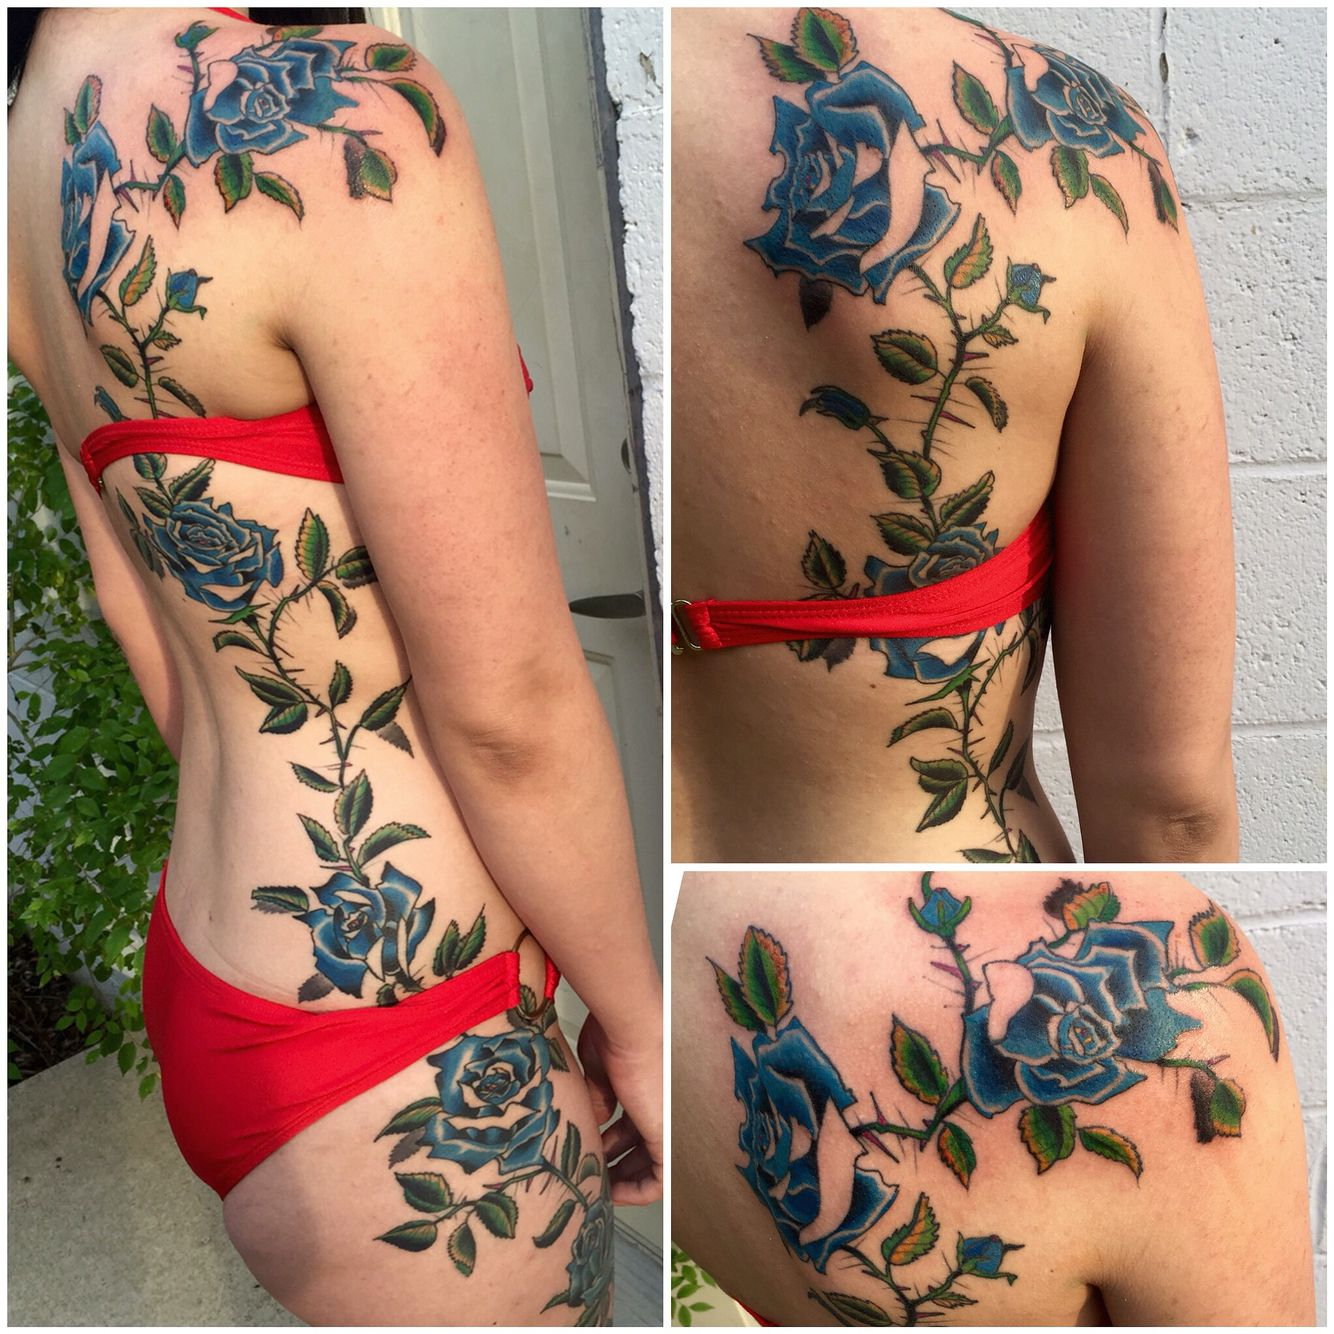 69 meaningful family tattoos designs mens craze - Roses From Shoulder To Thigh Tattoo Done By David Mendieta At Good Family Tattoo